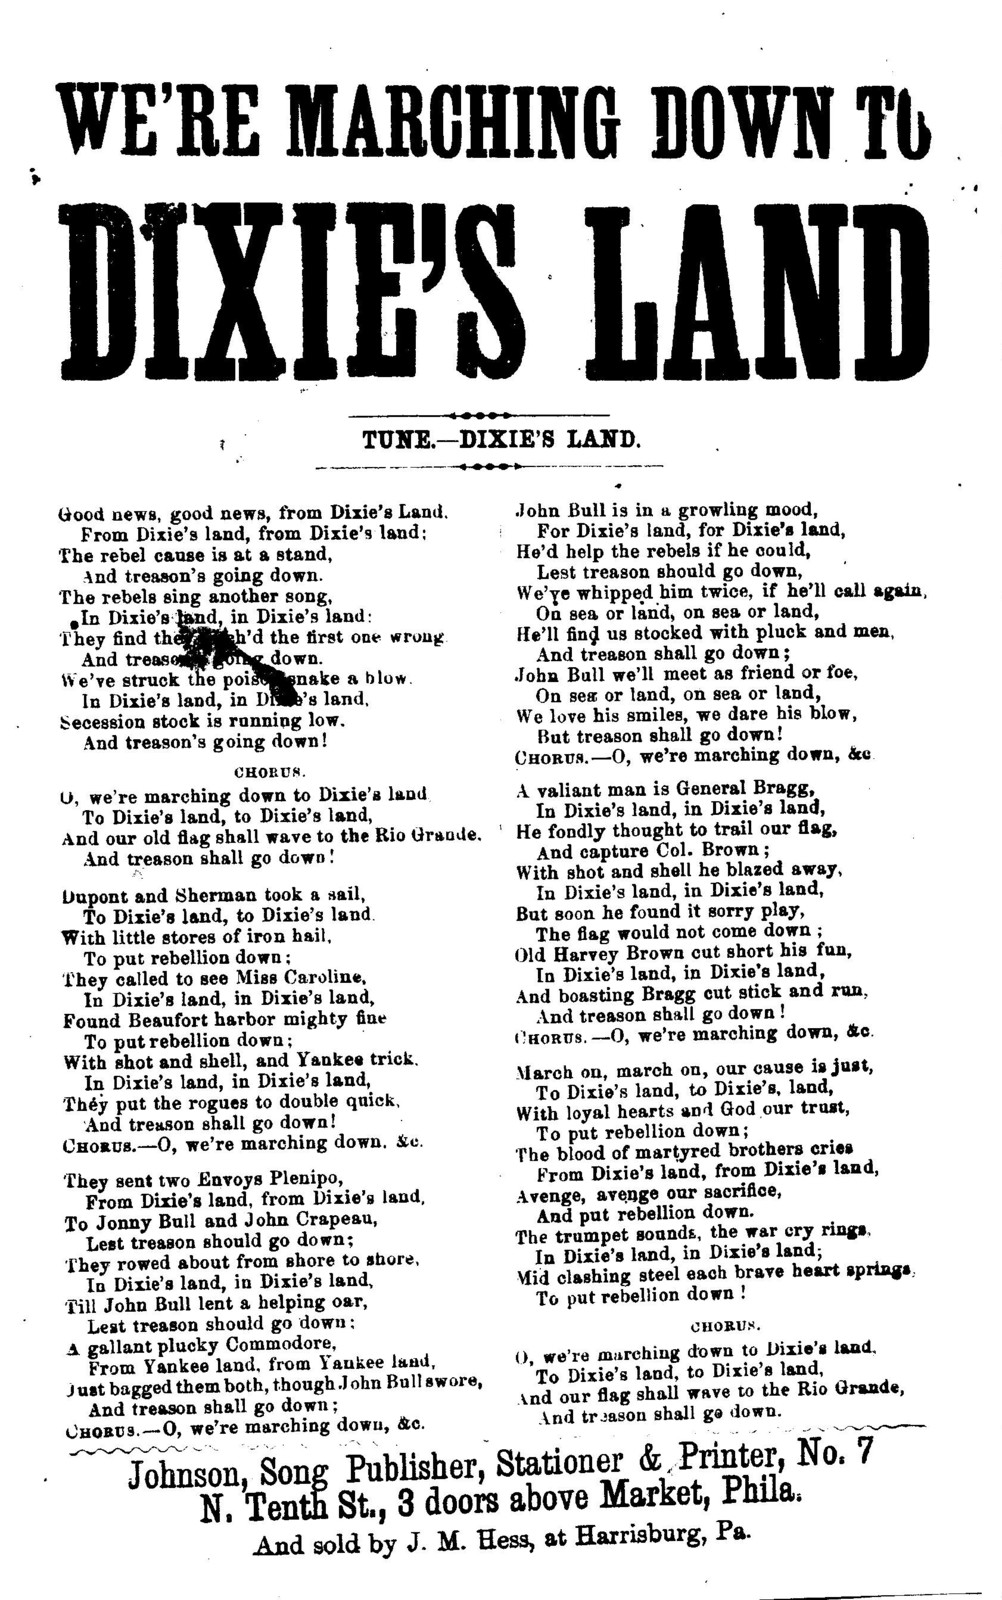 We're marching down to Dixie's land. Tune.-Dixie's land. Johnson, Song publisher, ... Phila